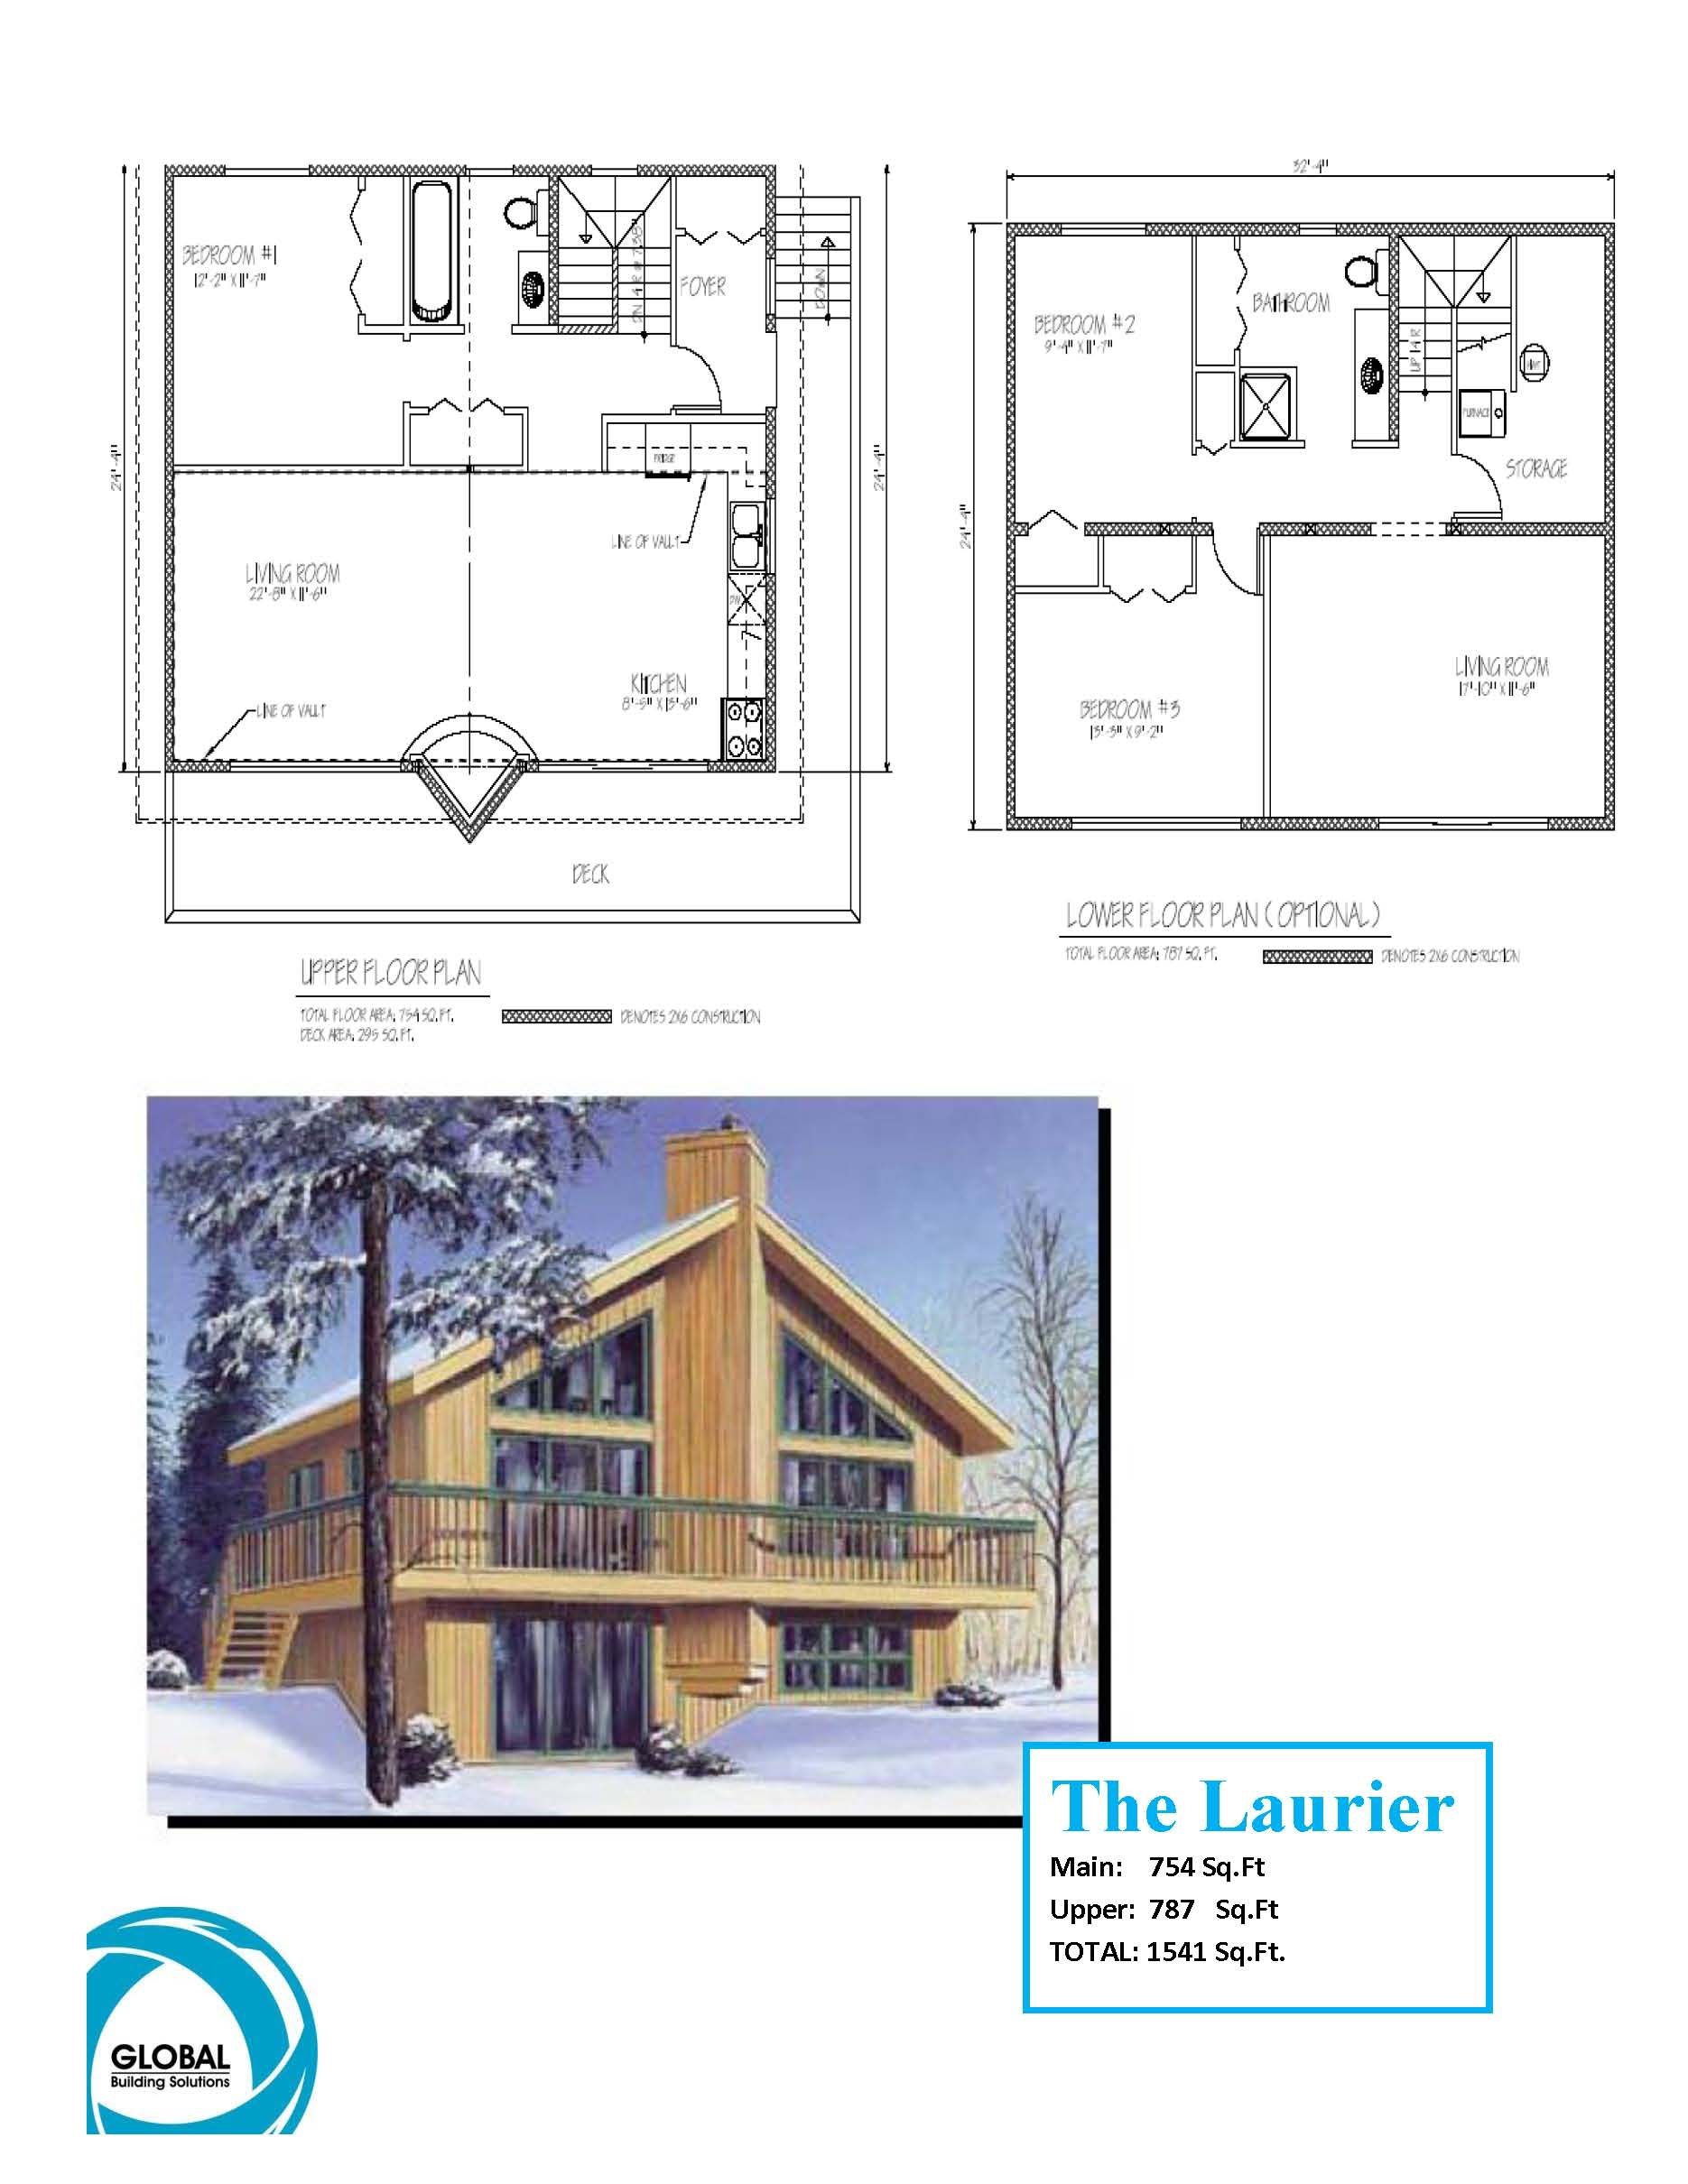 Cabin floor plan plp design and drafting calgary for Floor plan drafting services